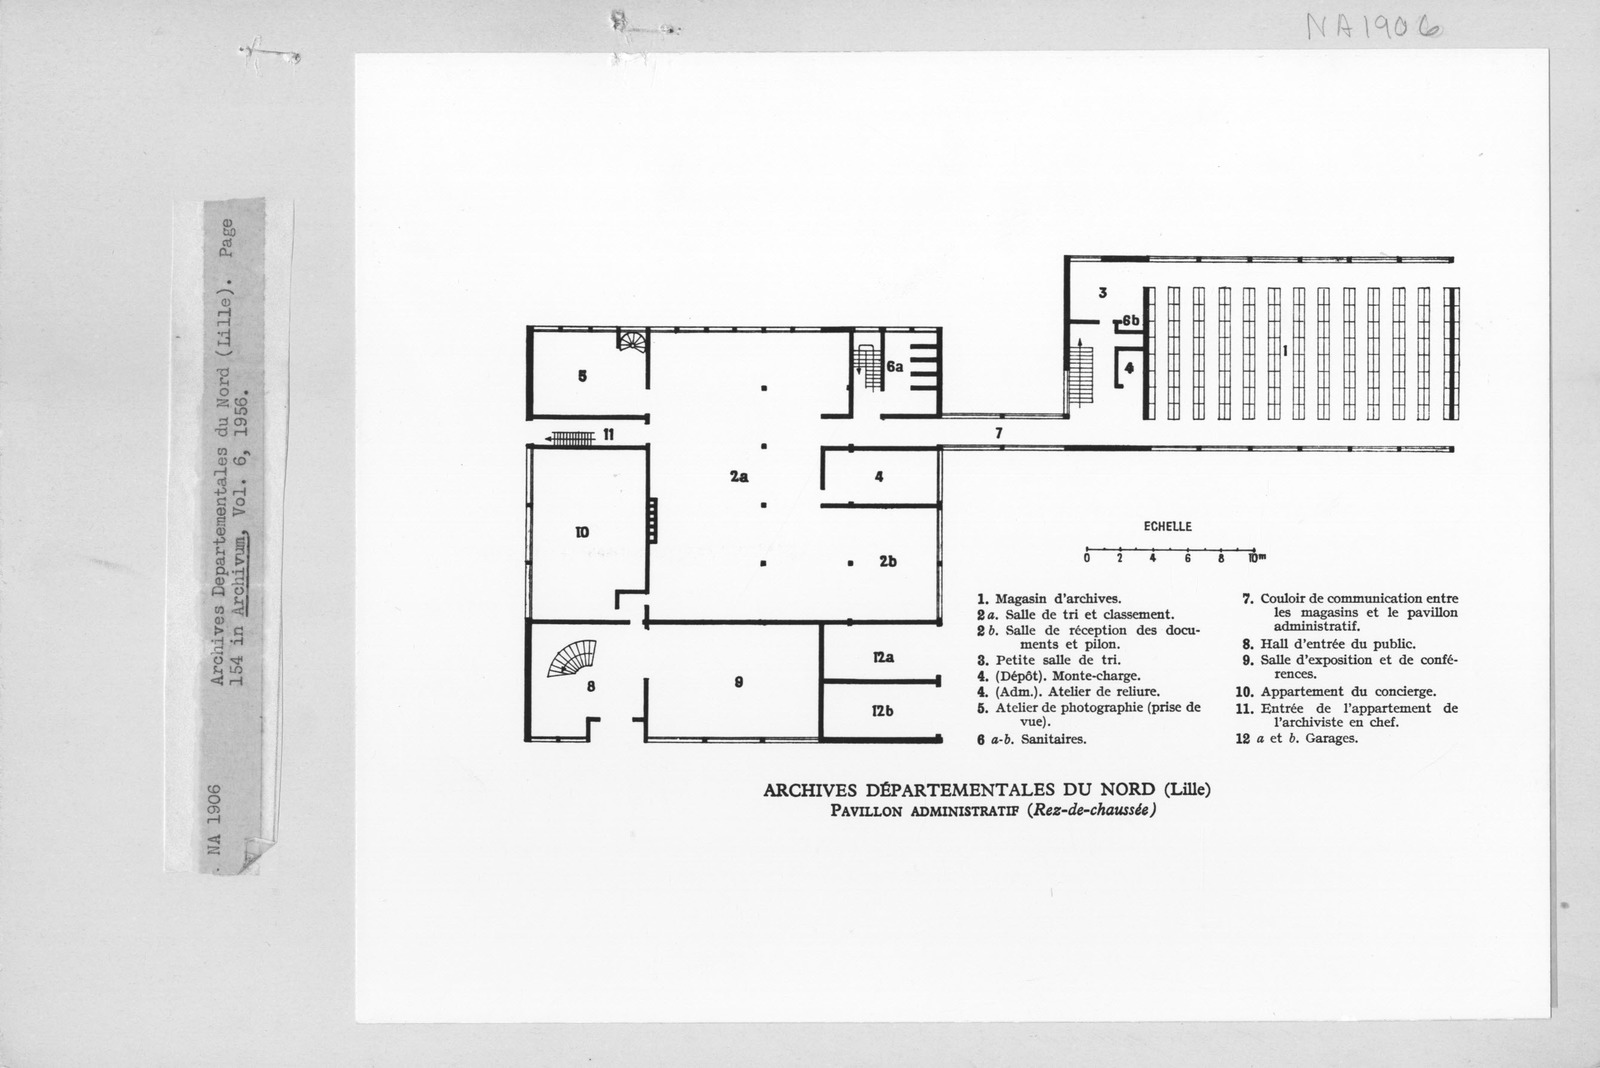 Photograph of a Drawing of the Floor Plan of Archives Departementales du Nord (Lille)